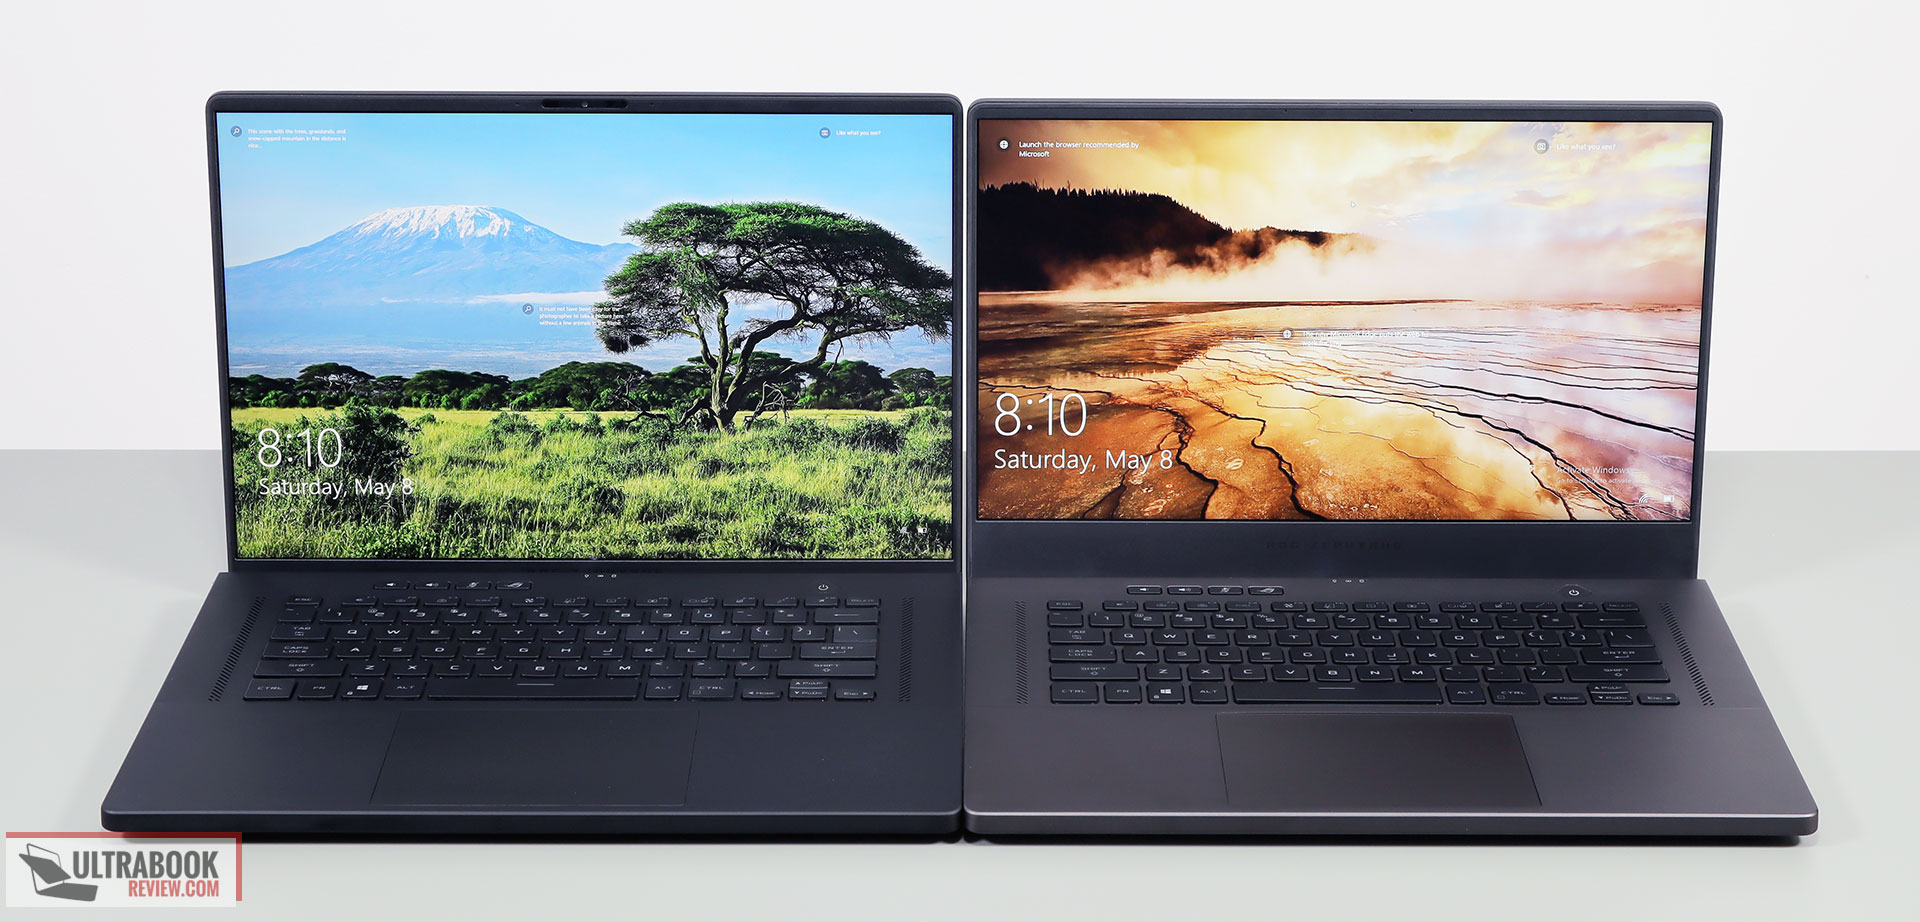 ROG Zephyrus M16 (left) and G15 (right)